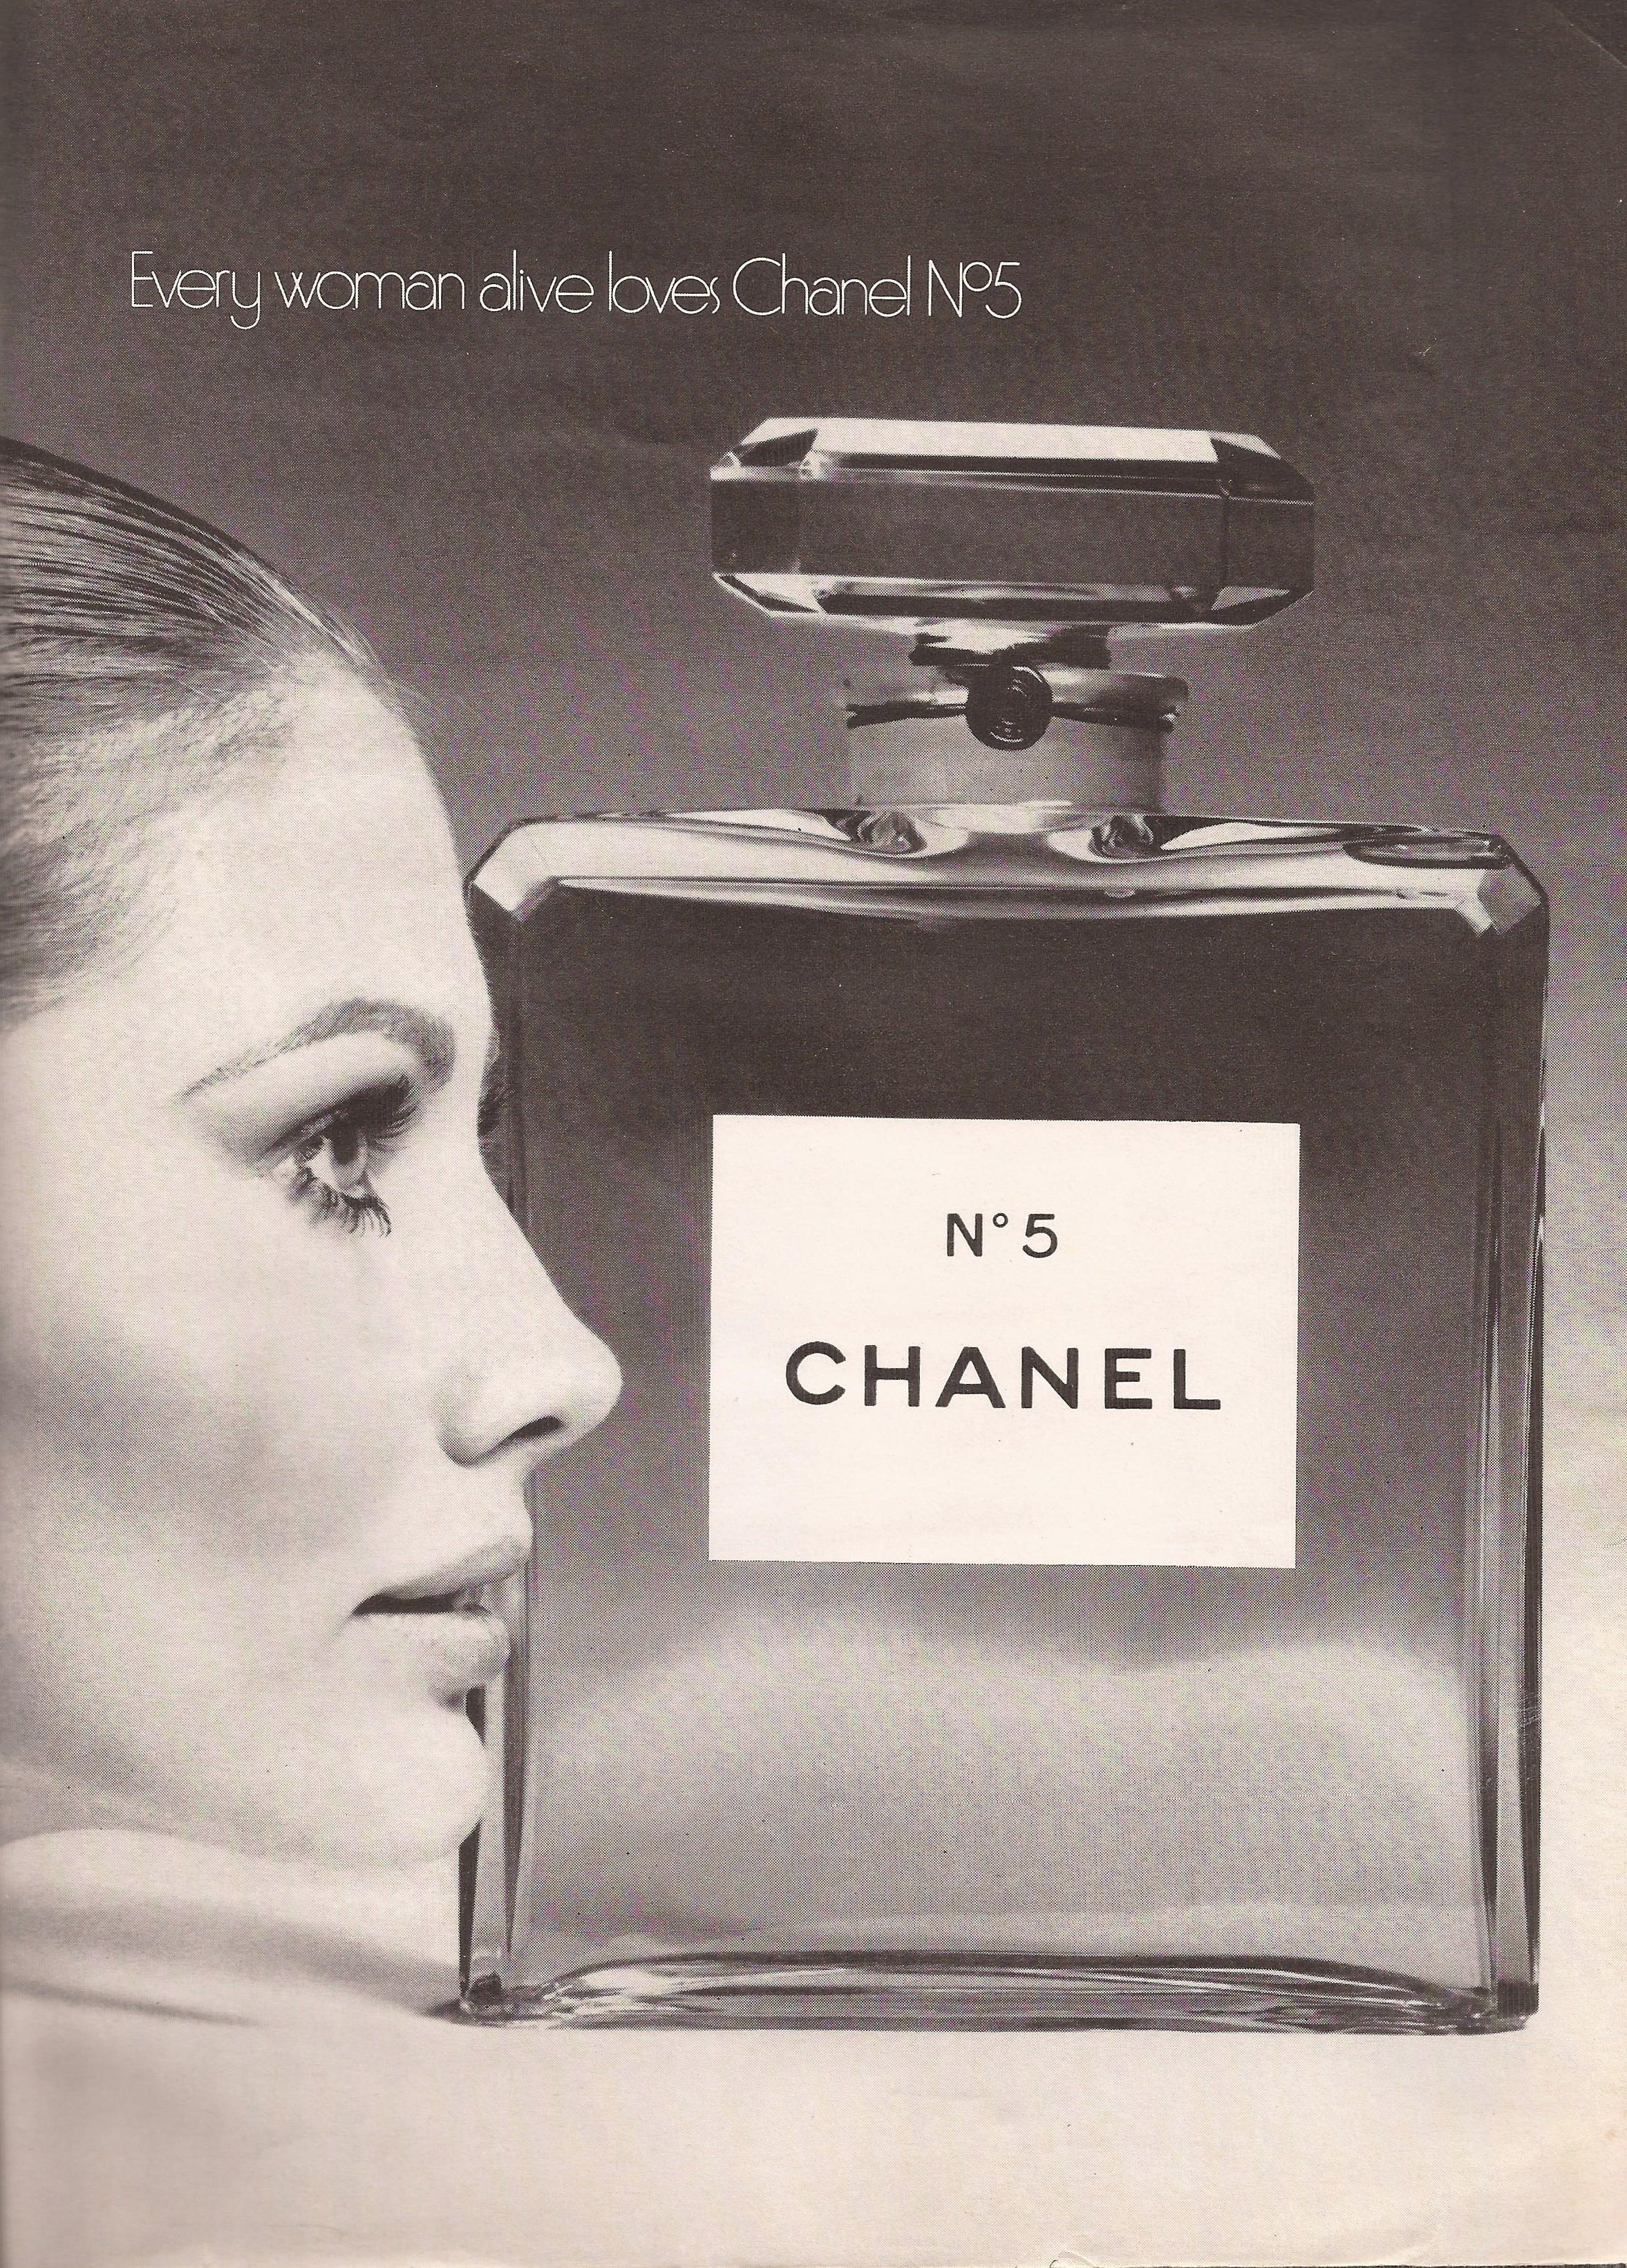 Chanel no 5 ad from playboy may 1969